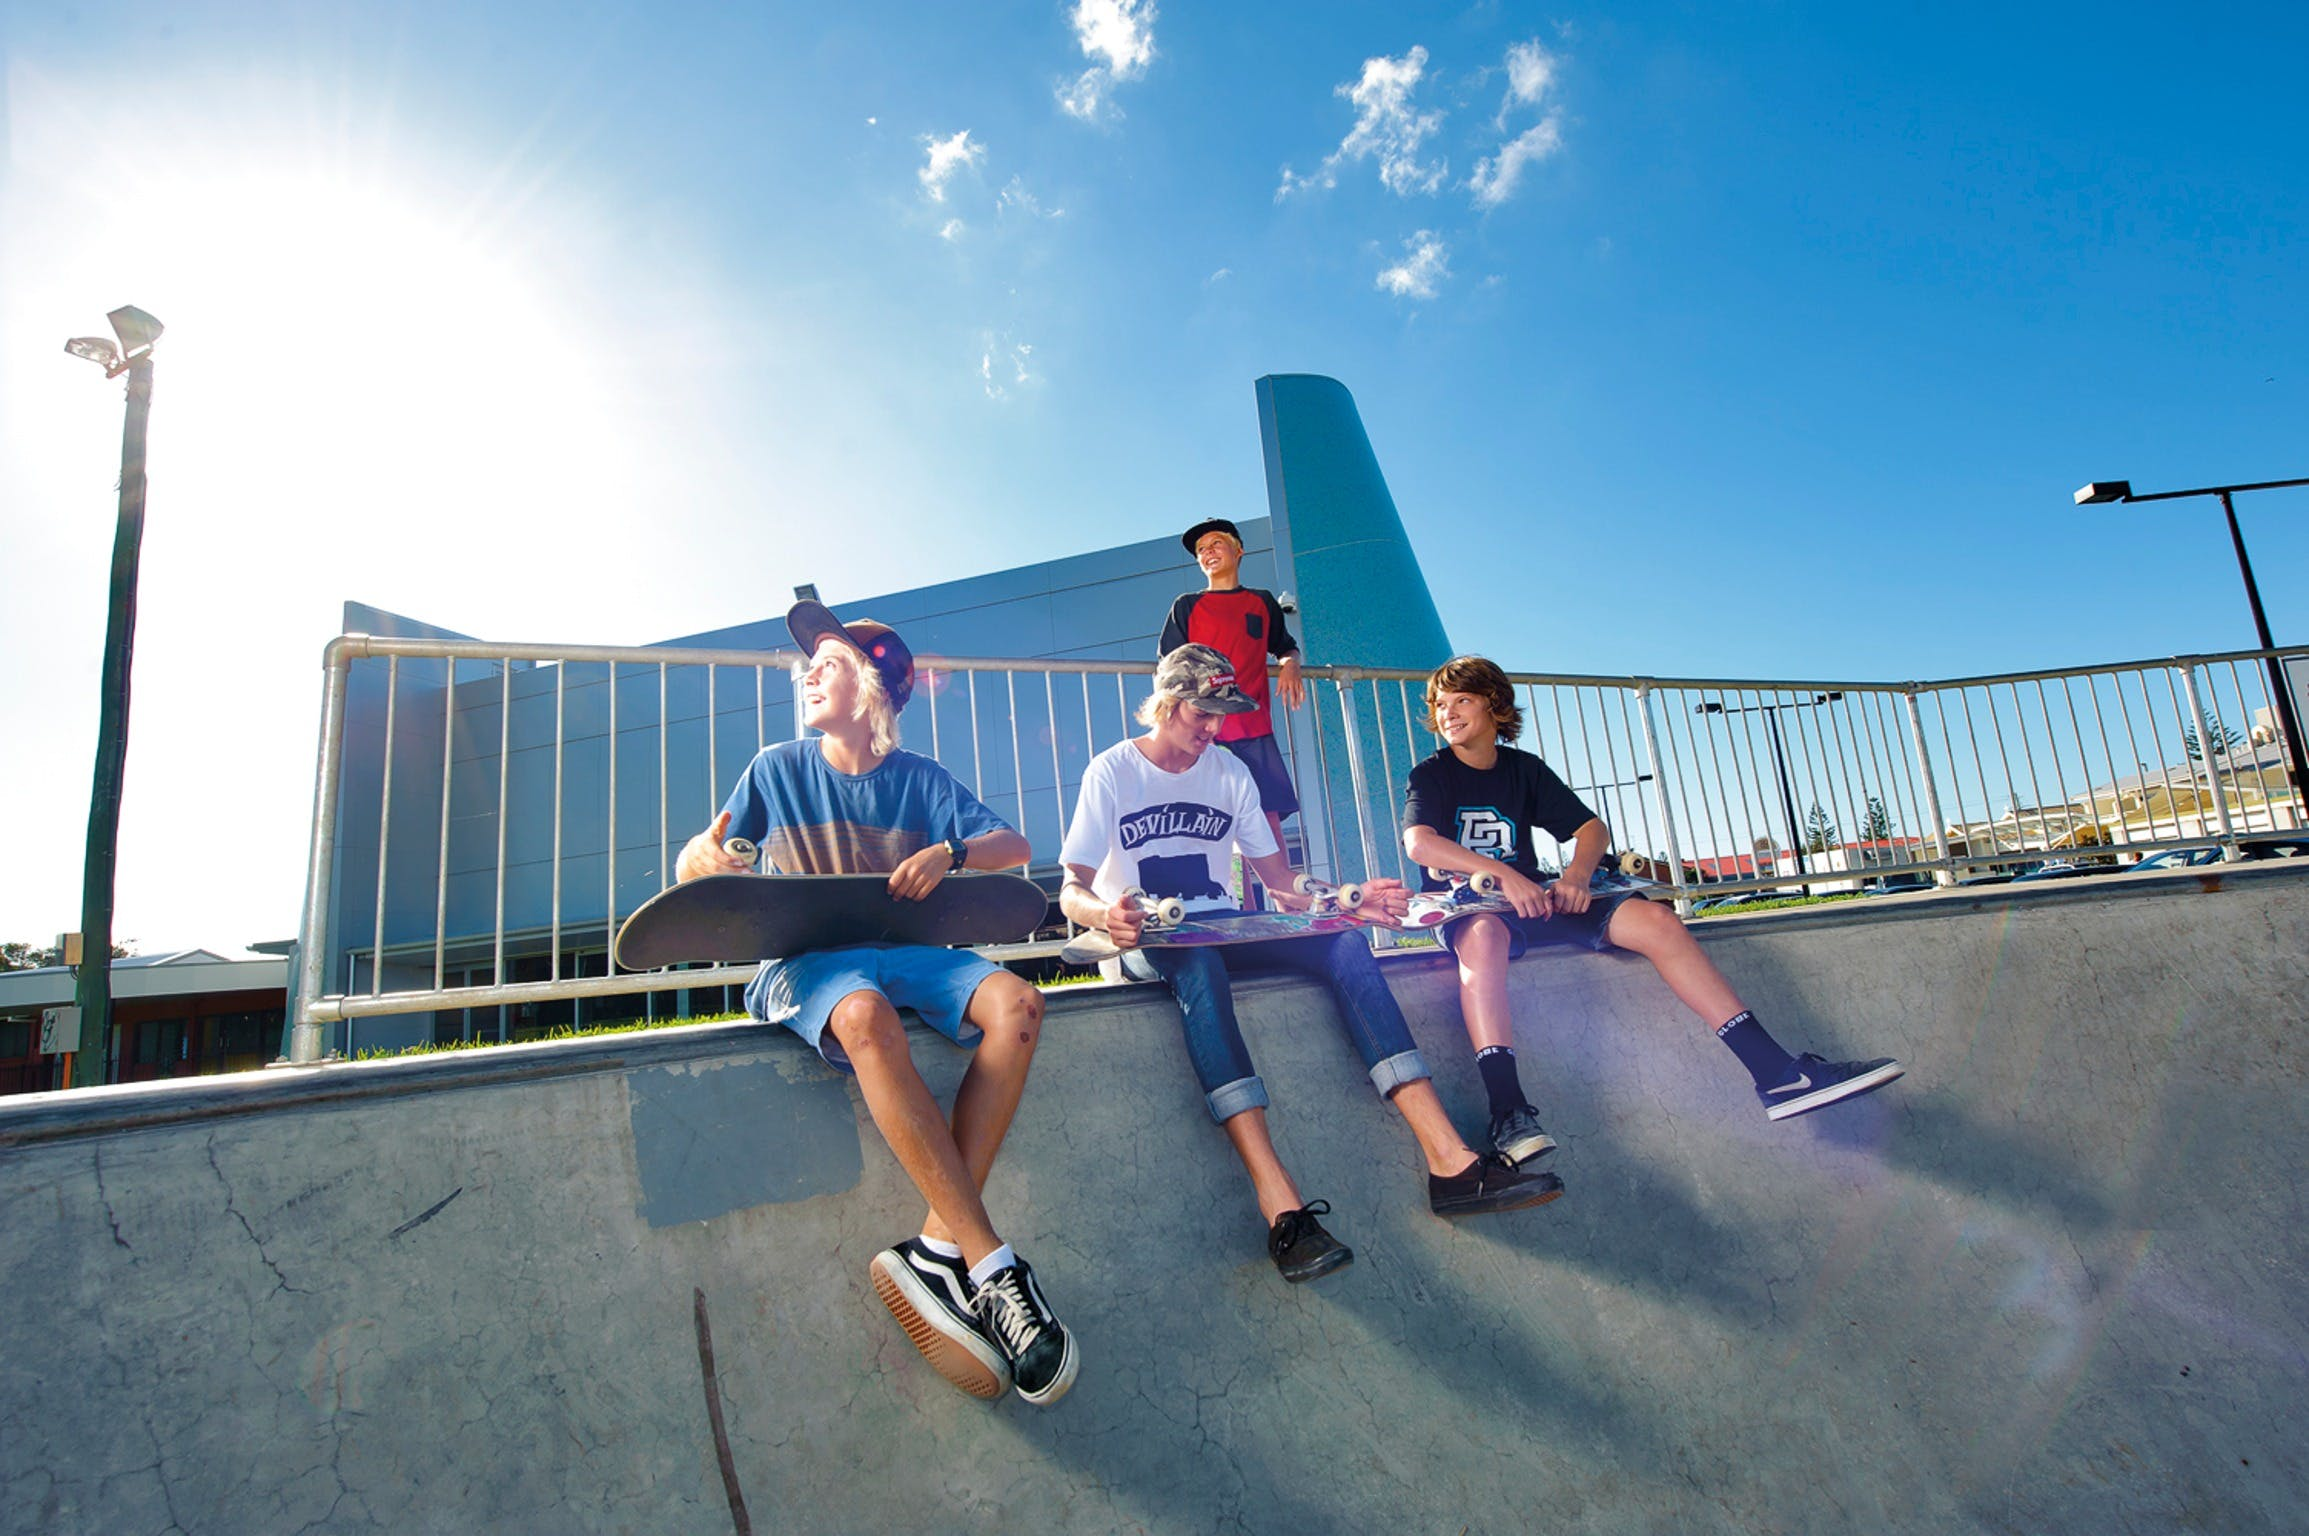 Fair Go Skate Comp - Newcastle Accommodation